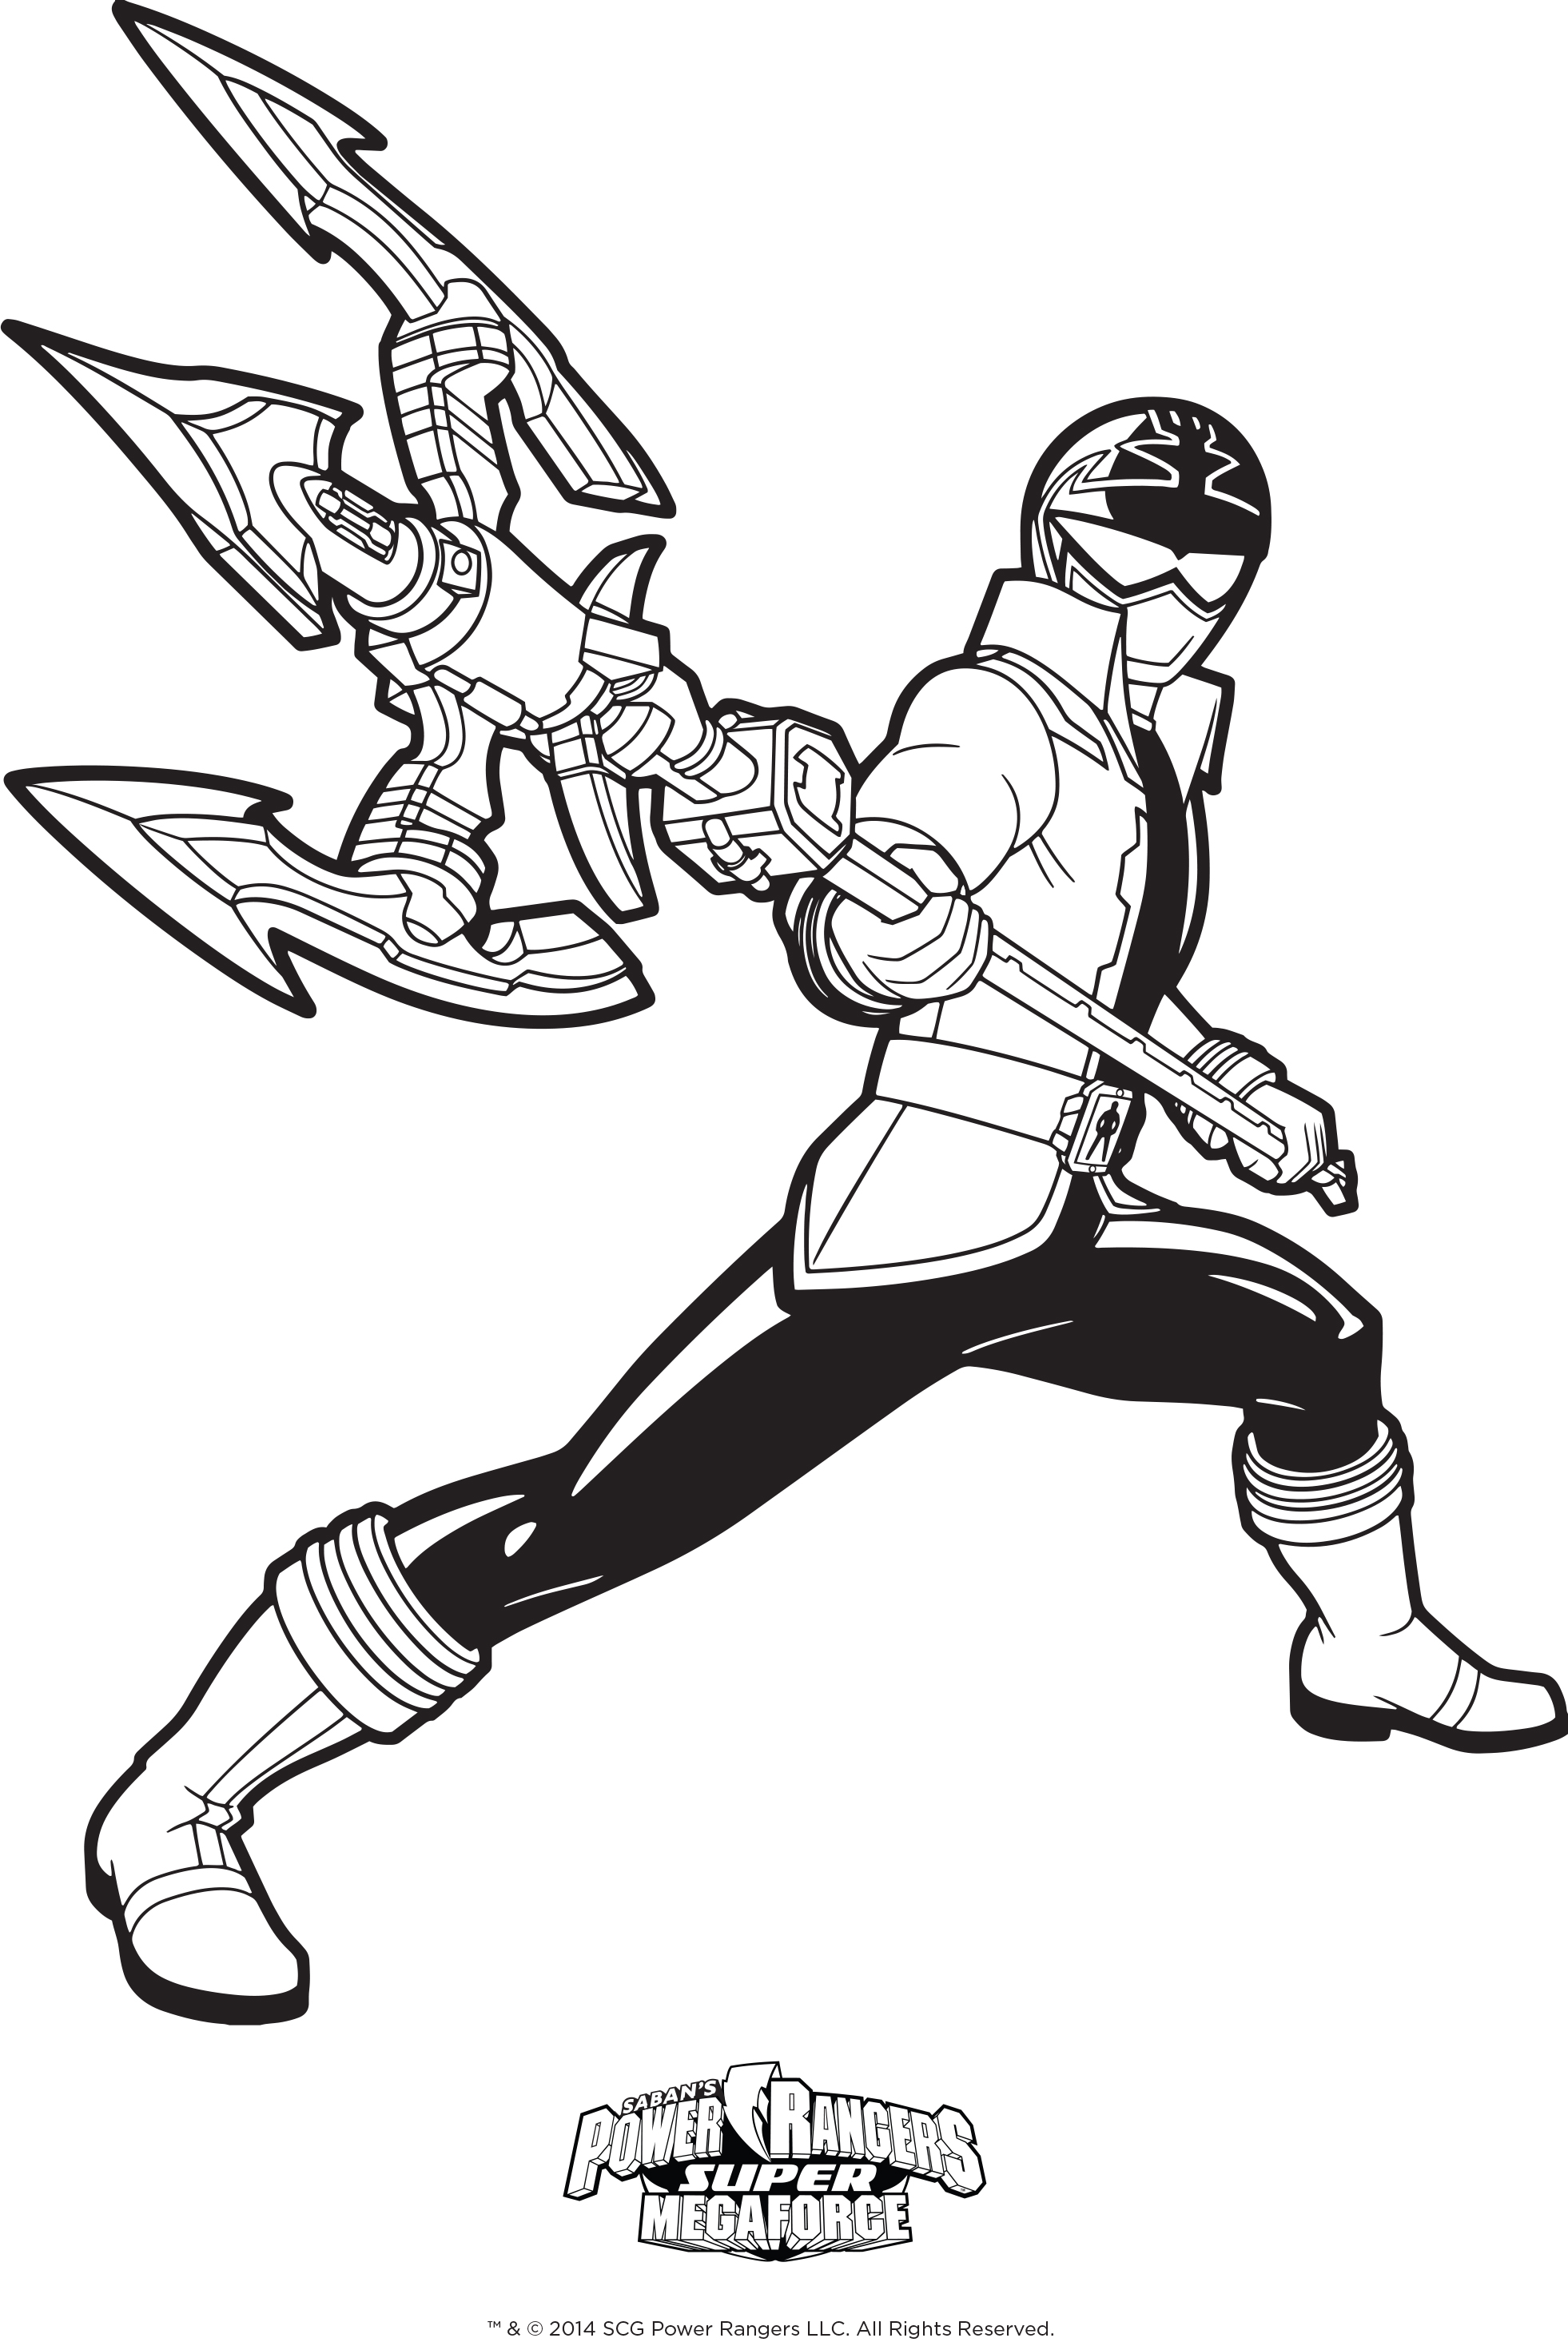 Power Rangers Samurai Drawing at GetDrawings.com | Free for personal ...